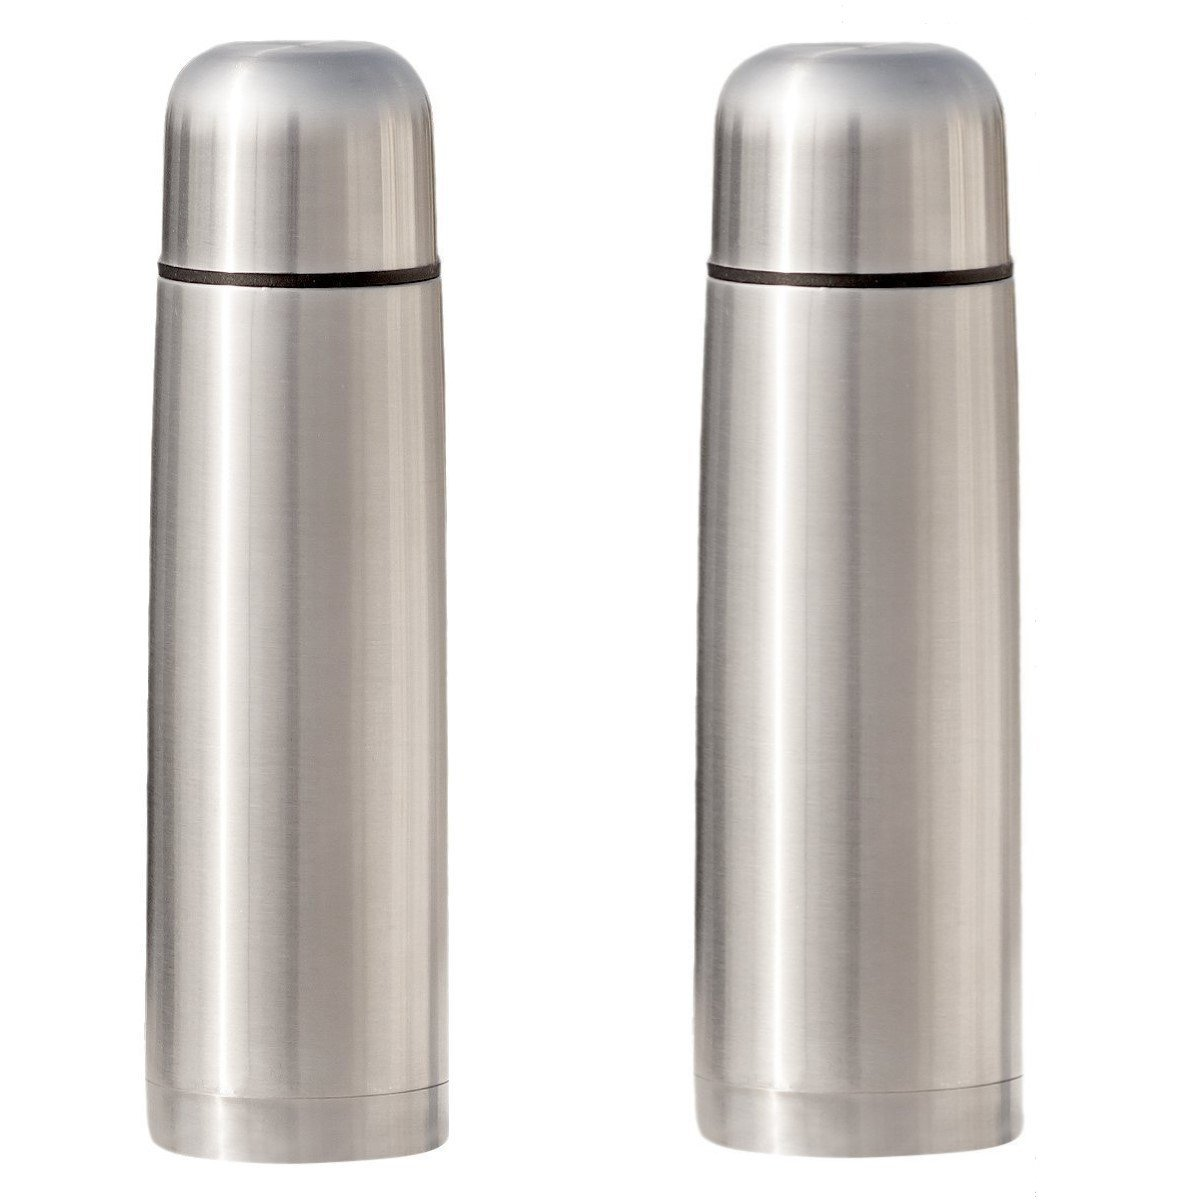 Stainless Steel Coffee thermos - Vacuum Insulated for Hot Tea - Cold Water Bottle 17 oz 2 Pack